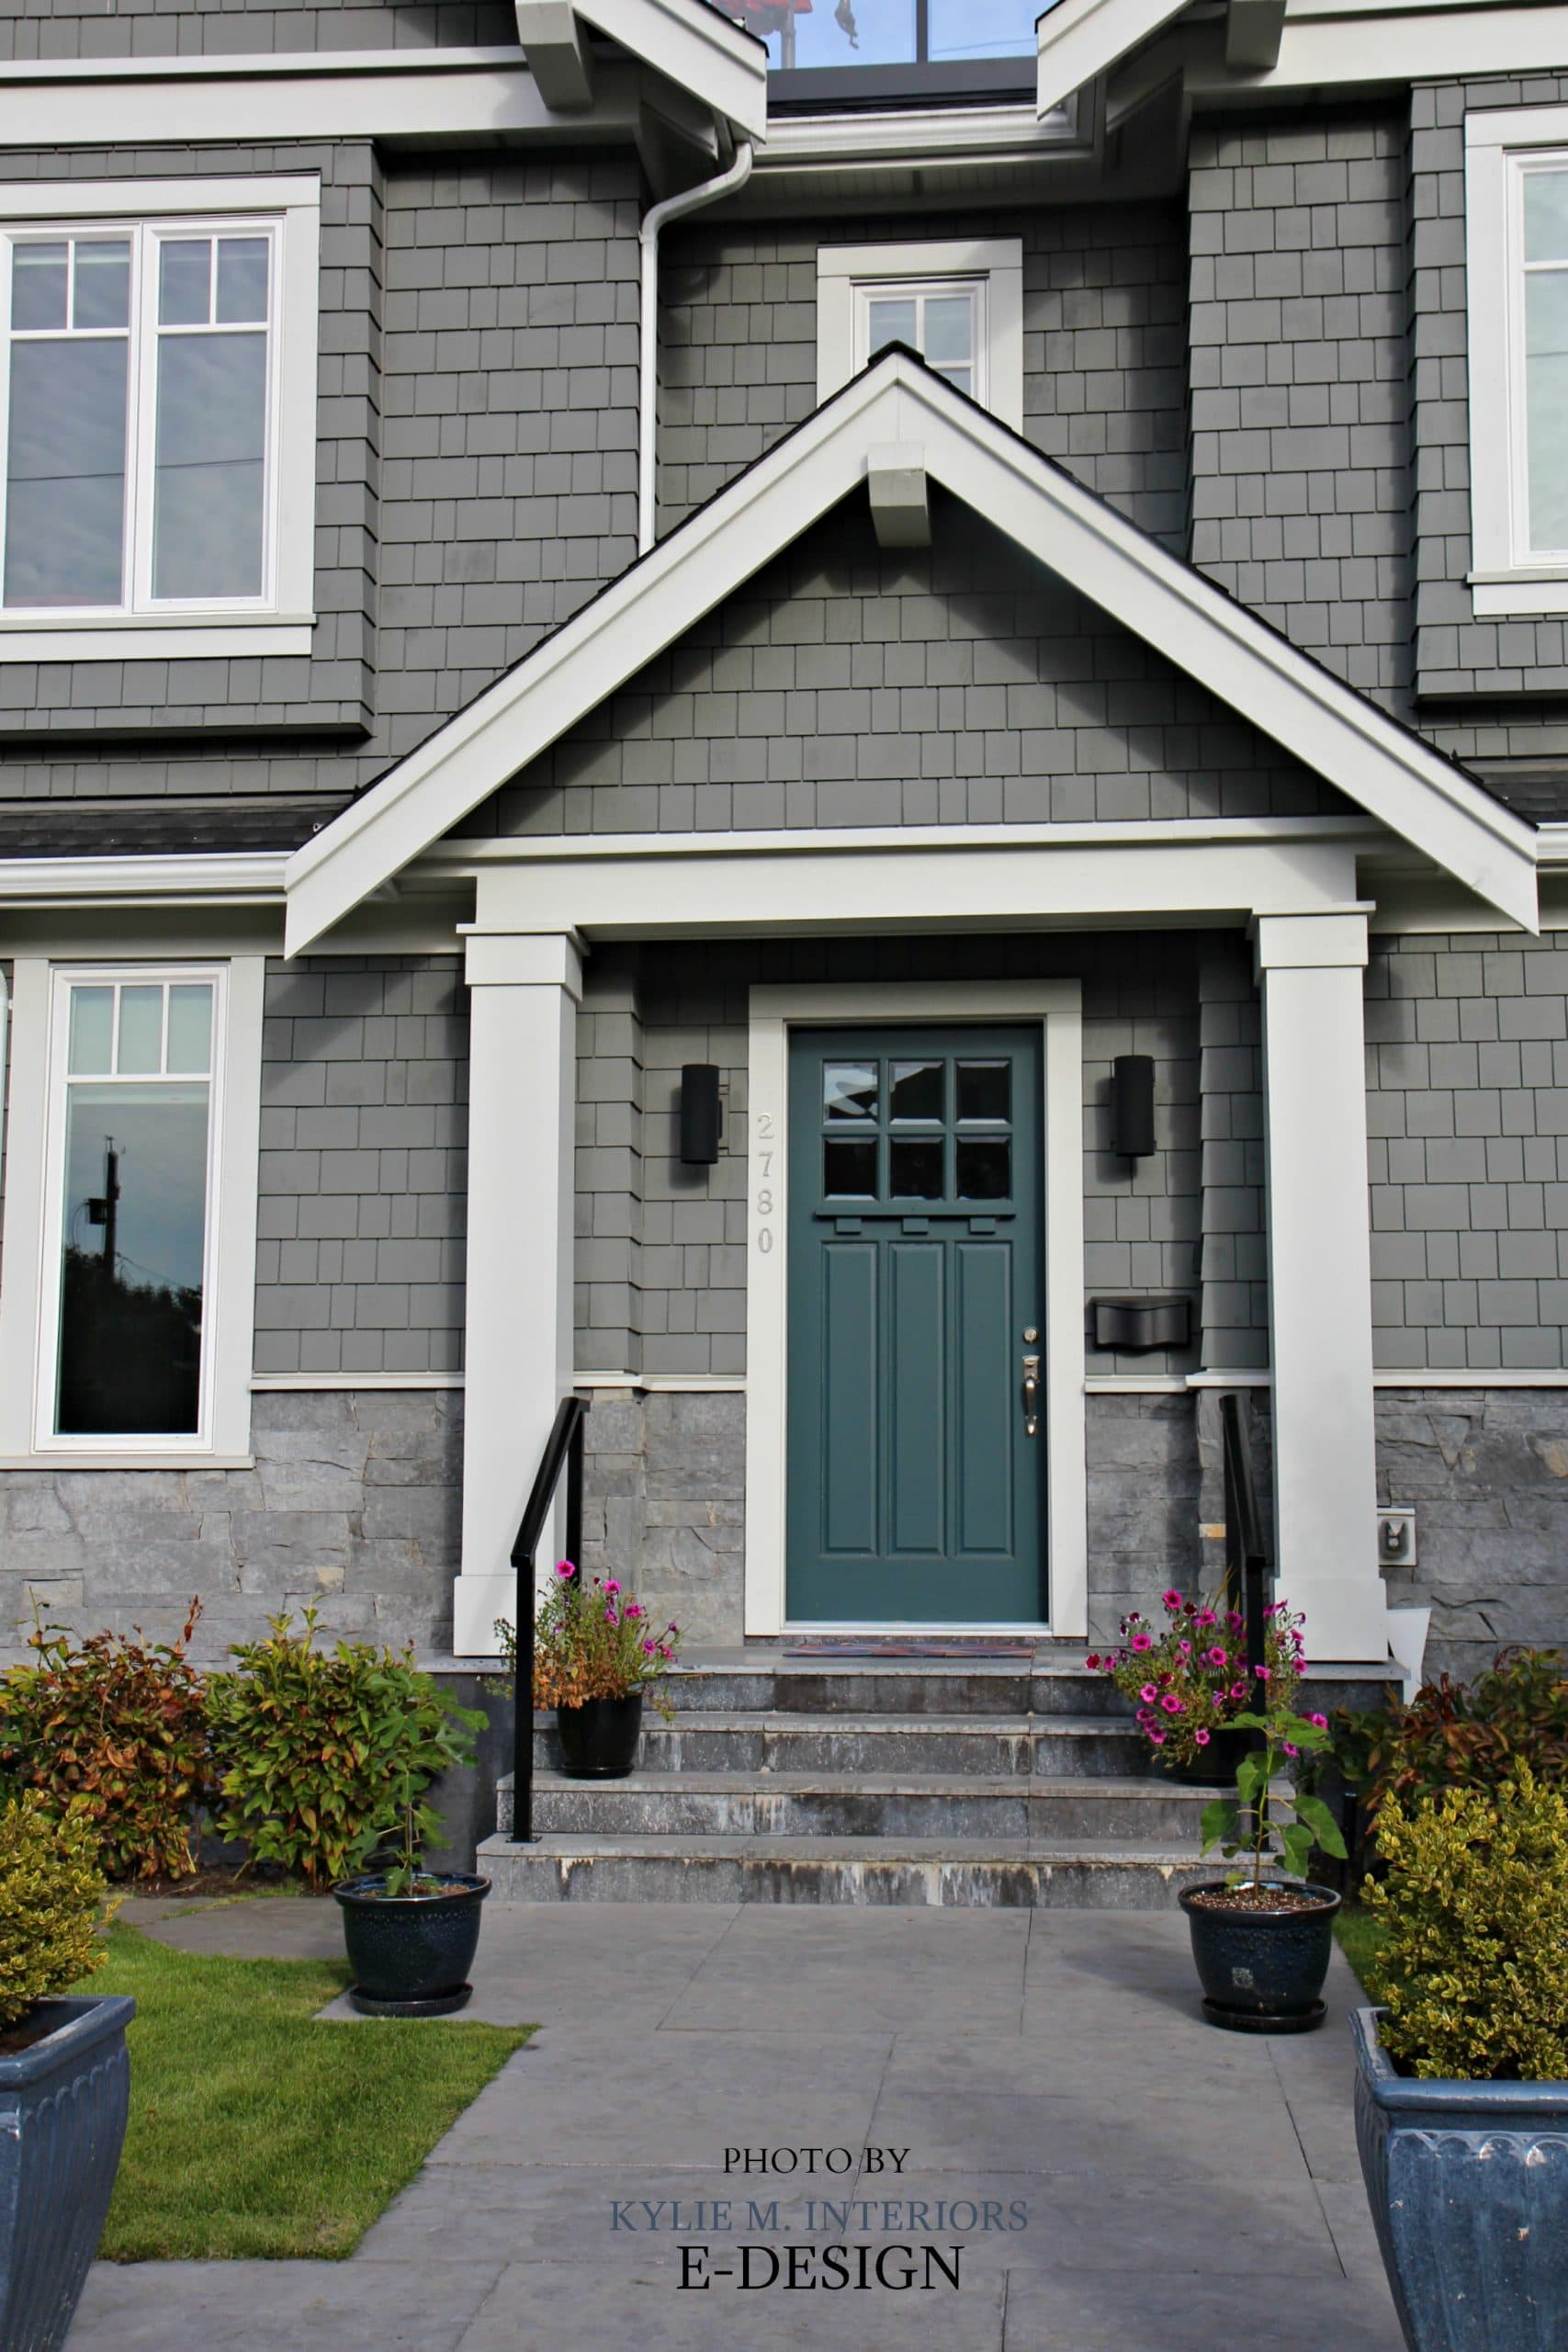 Front door curb appeal colour similar to Sherwin Williams Riverway. Shingles exterior similar to BEnjamin Moore Chelsea Gray. Kylie M E-design photo & Front door curb appeal colour similar to Sherwin Williams Riverway ...